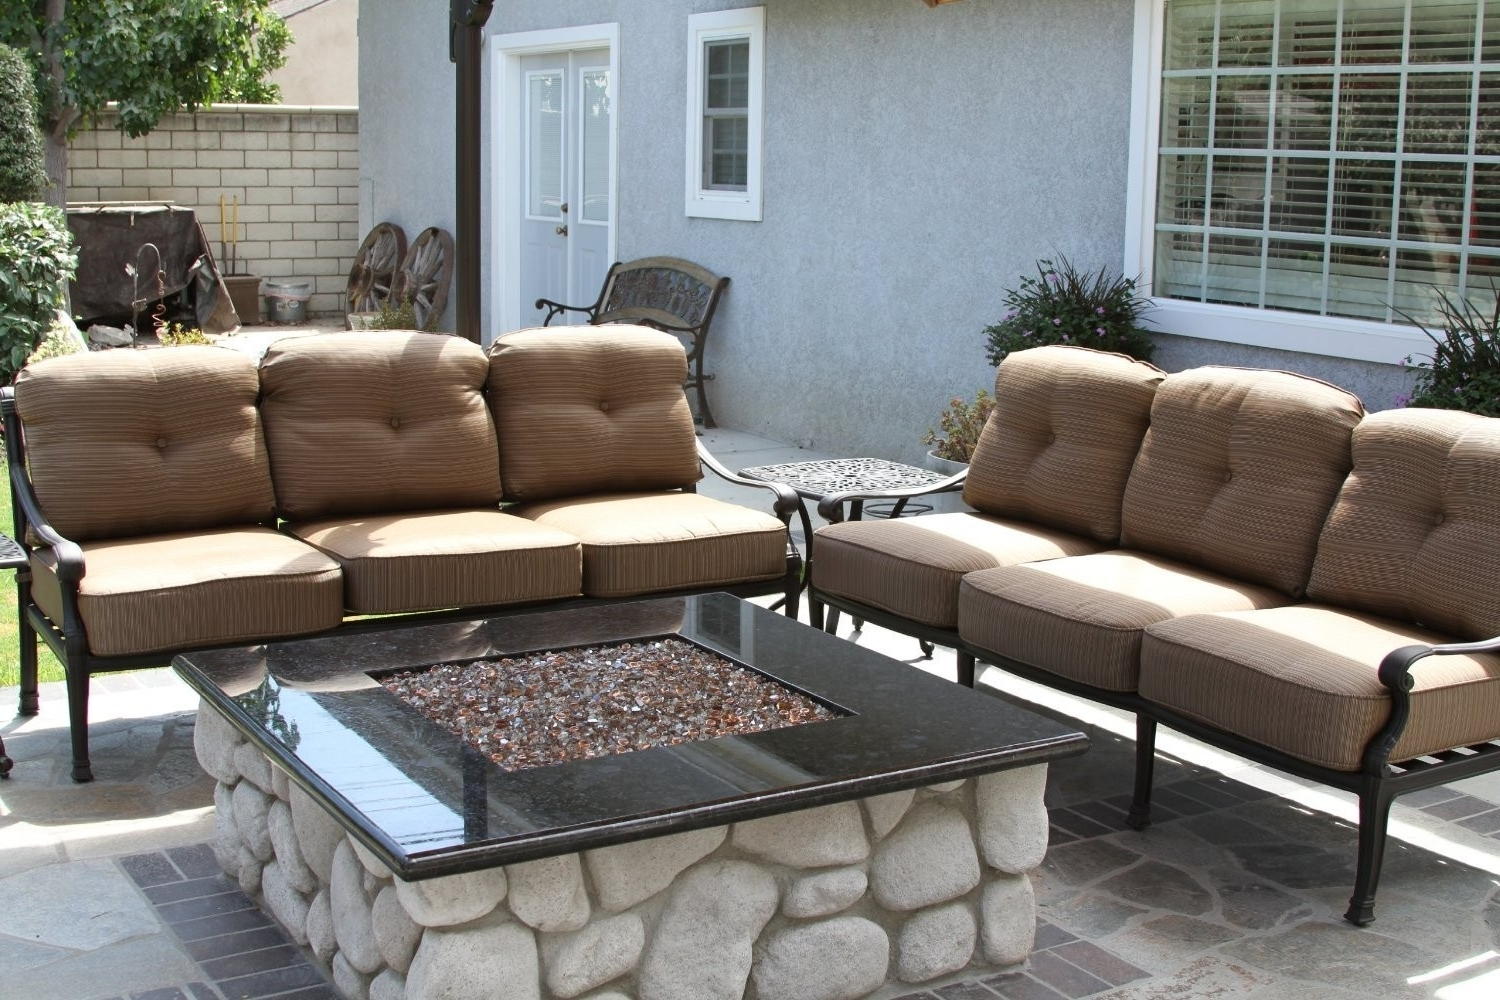 Widely Used Patio Sofas Regarding Sofas & Sectionals – The World Of Patio – Selling Dining Sets (View 20 of 20)